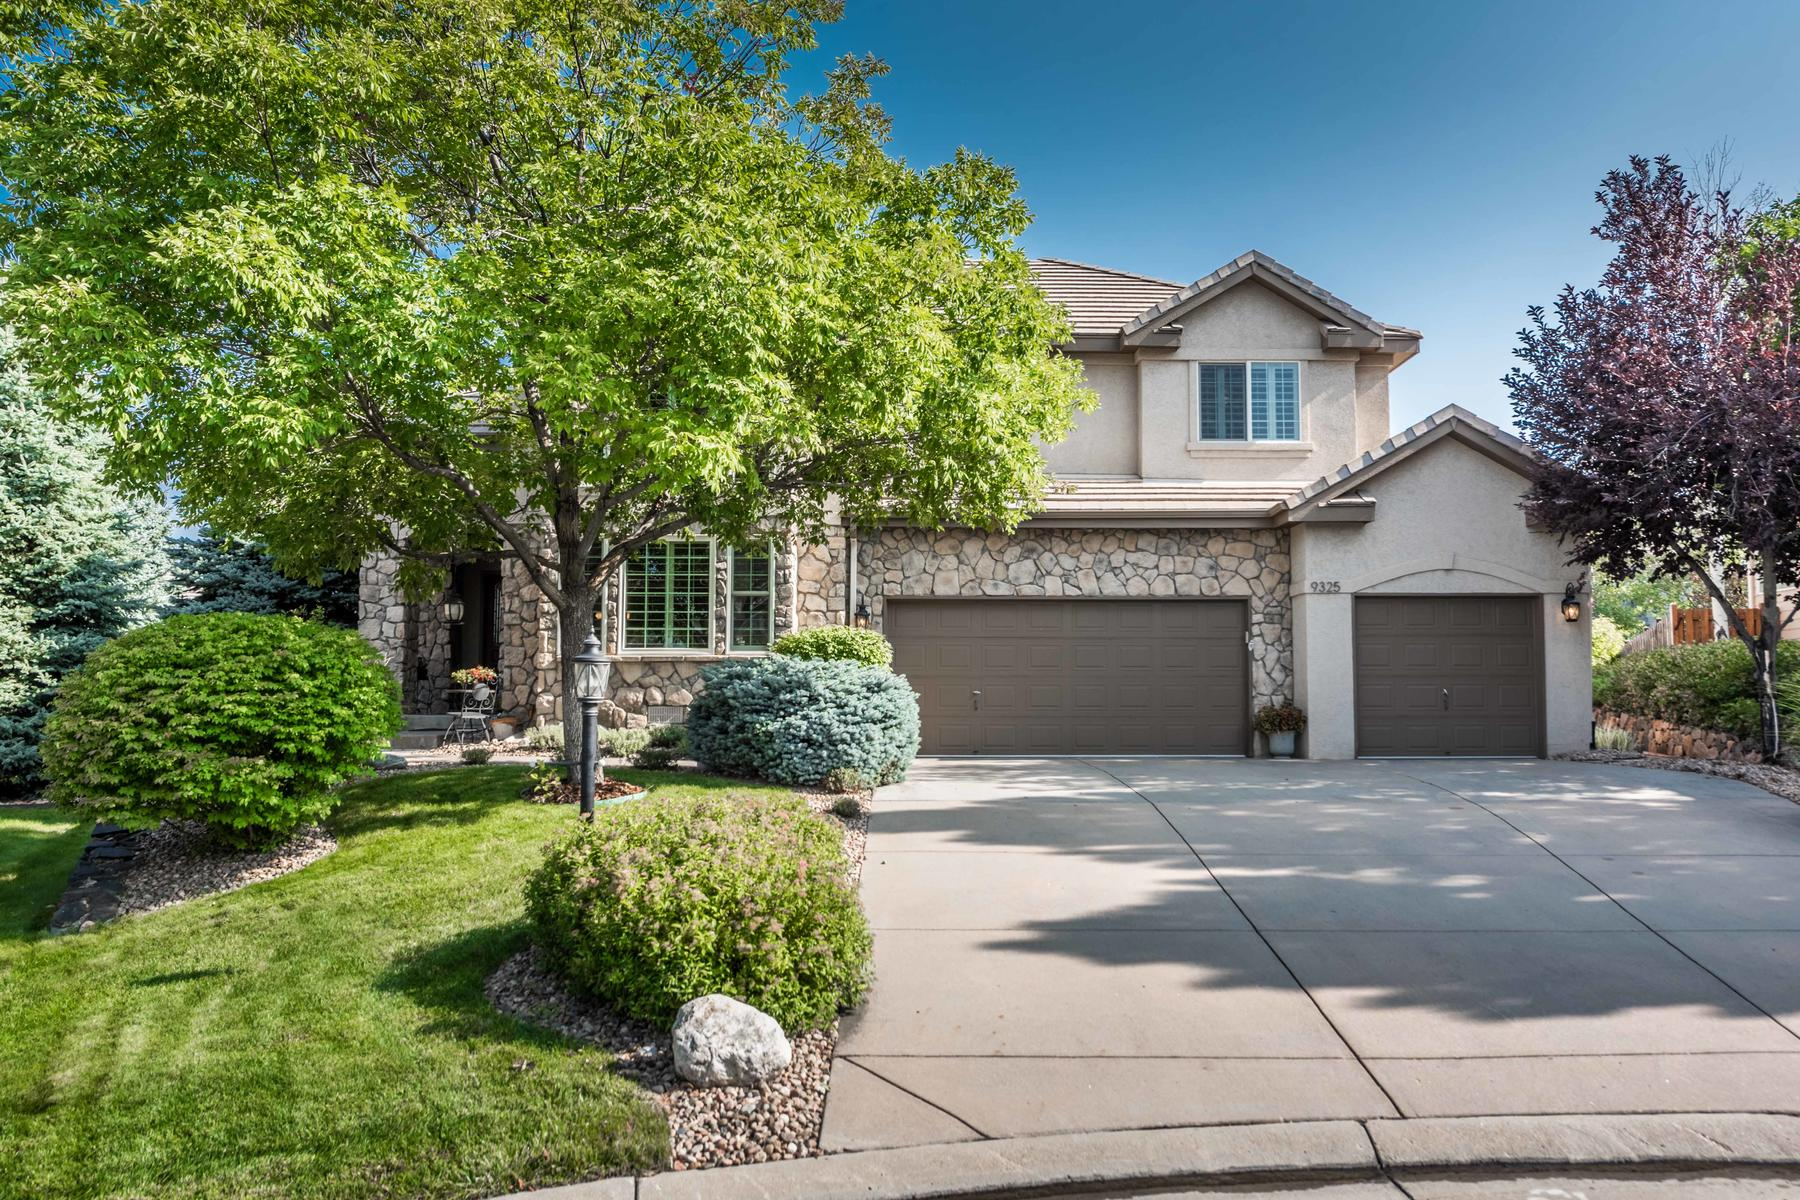 Single Family Home for Active at Rare, main floor Master Suite in coveted Heritage Hills ! 9325 E Aspen Hill Ln Lone Tree, Colorado 80124 United States